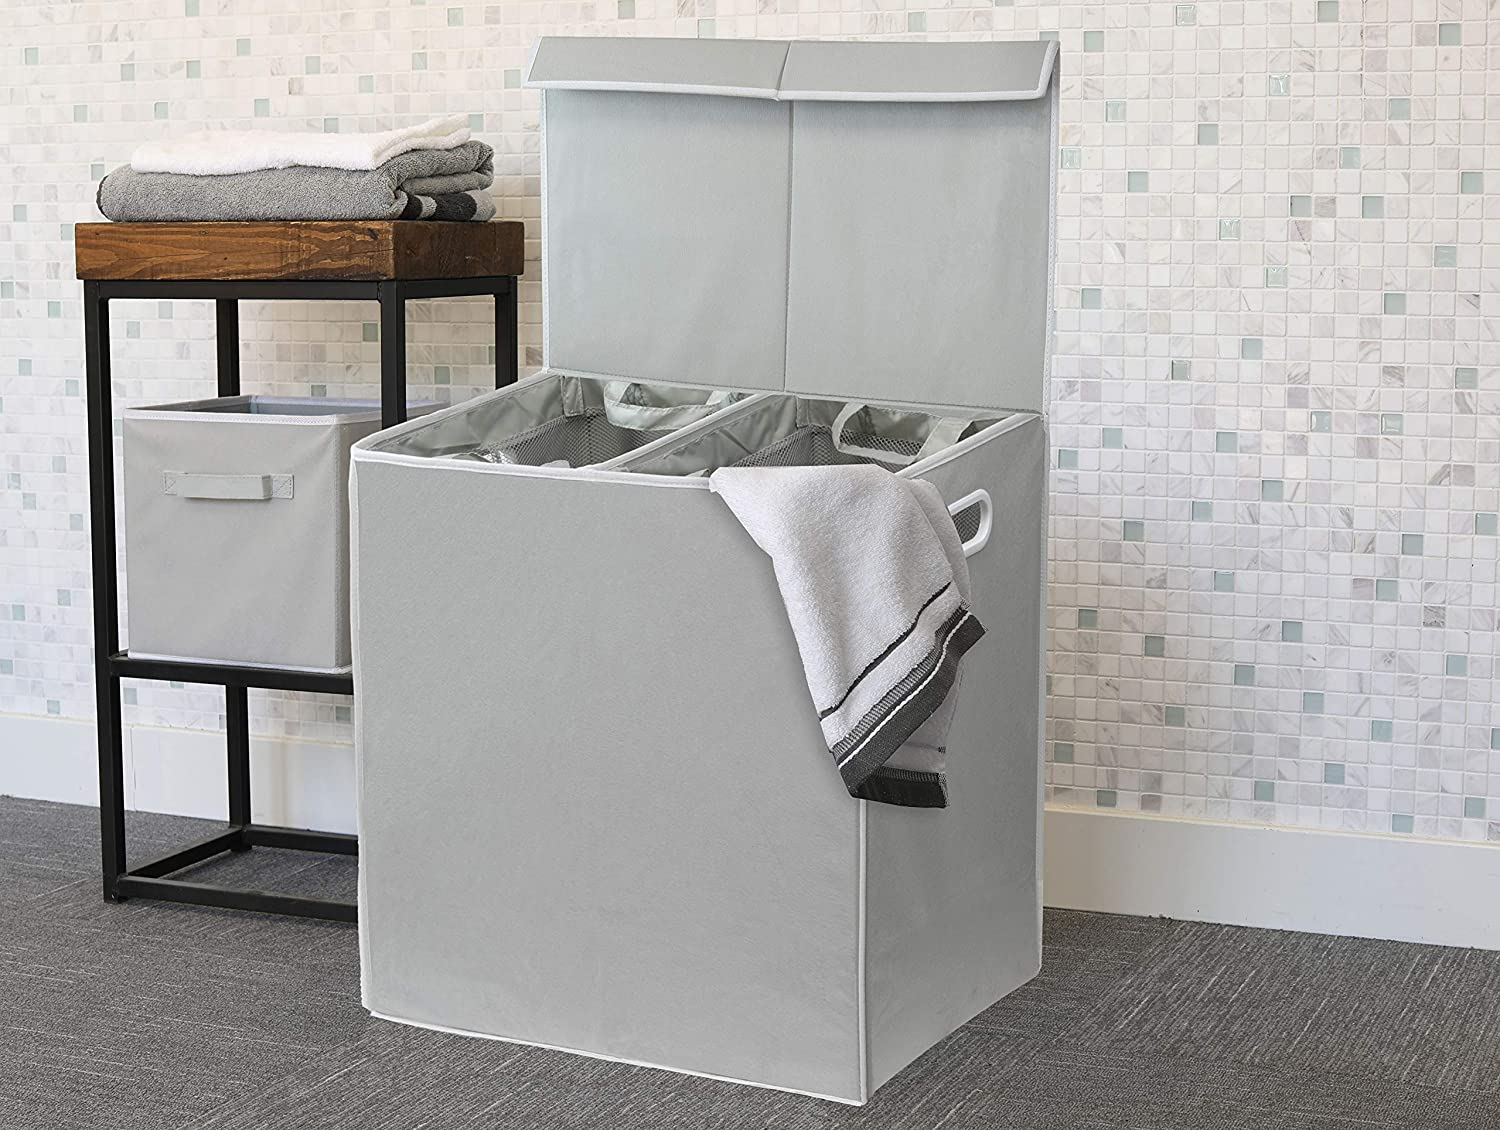 Double Laundry Hamper with Lid and Removable Laundry Bags, Grey